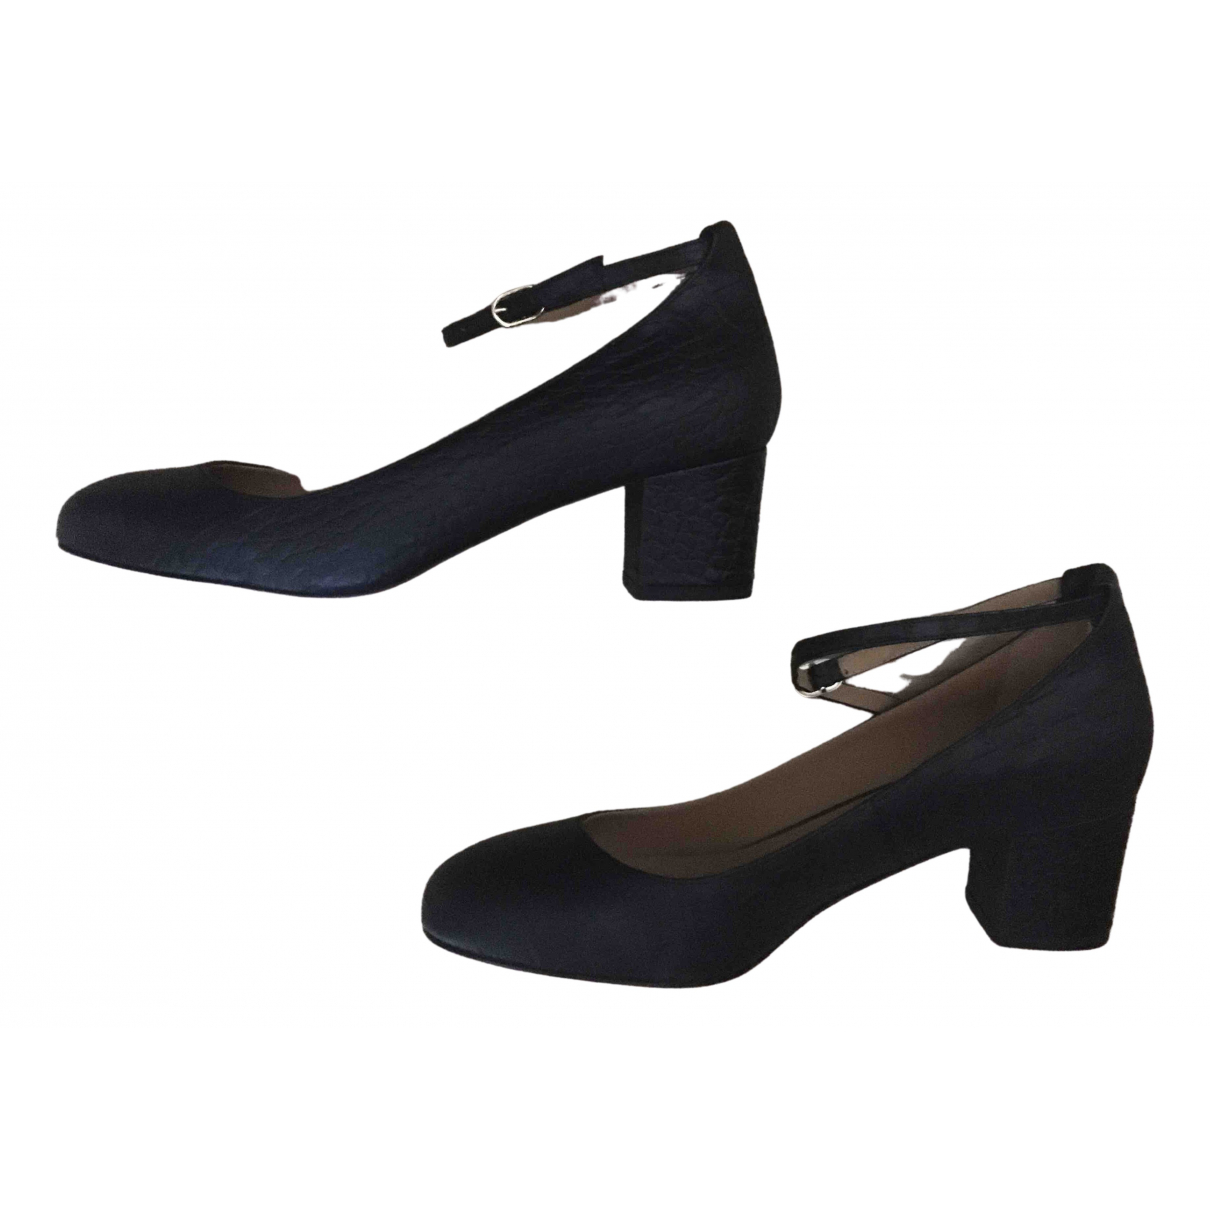 Sézane \N Black Leather Heels for Women 38 EU